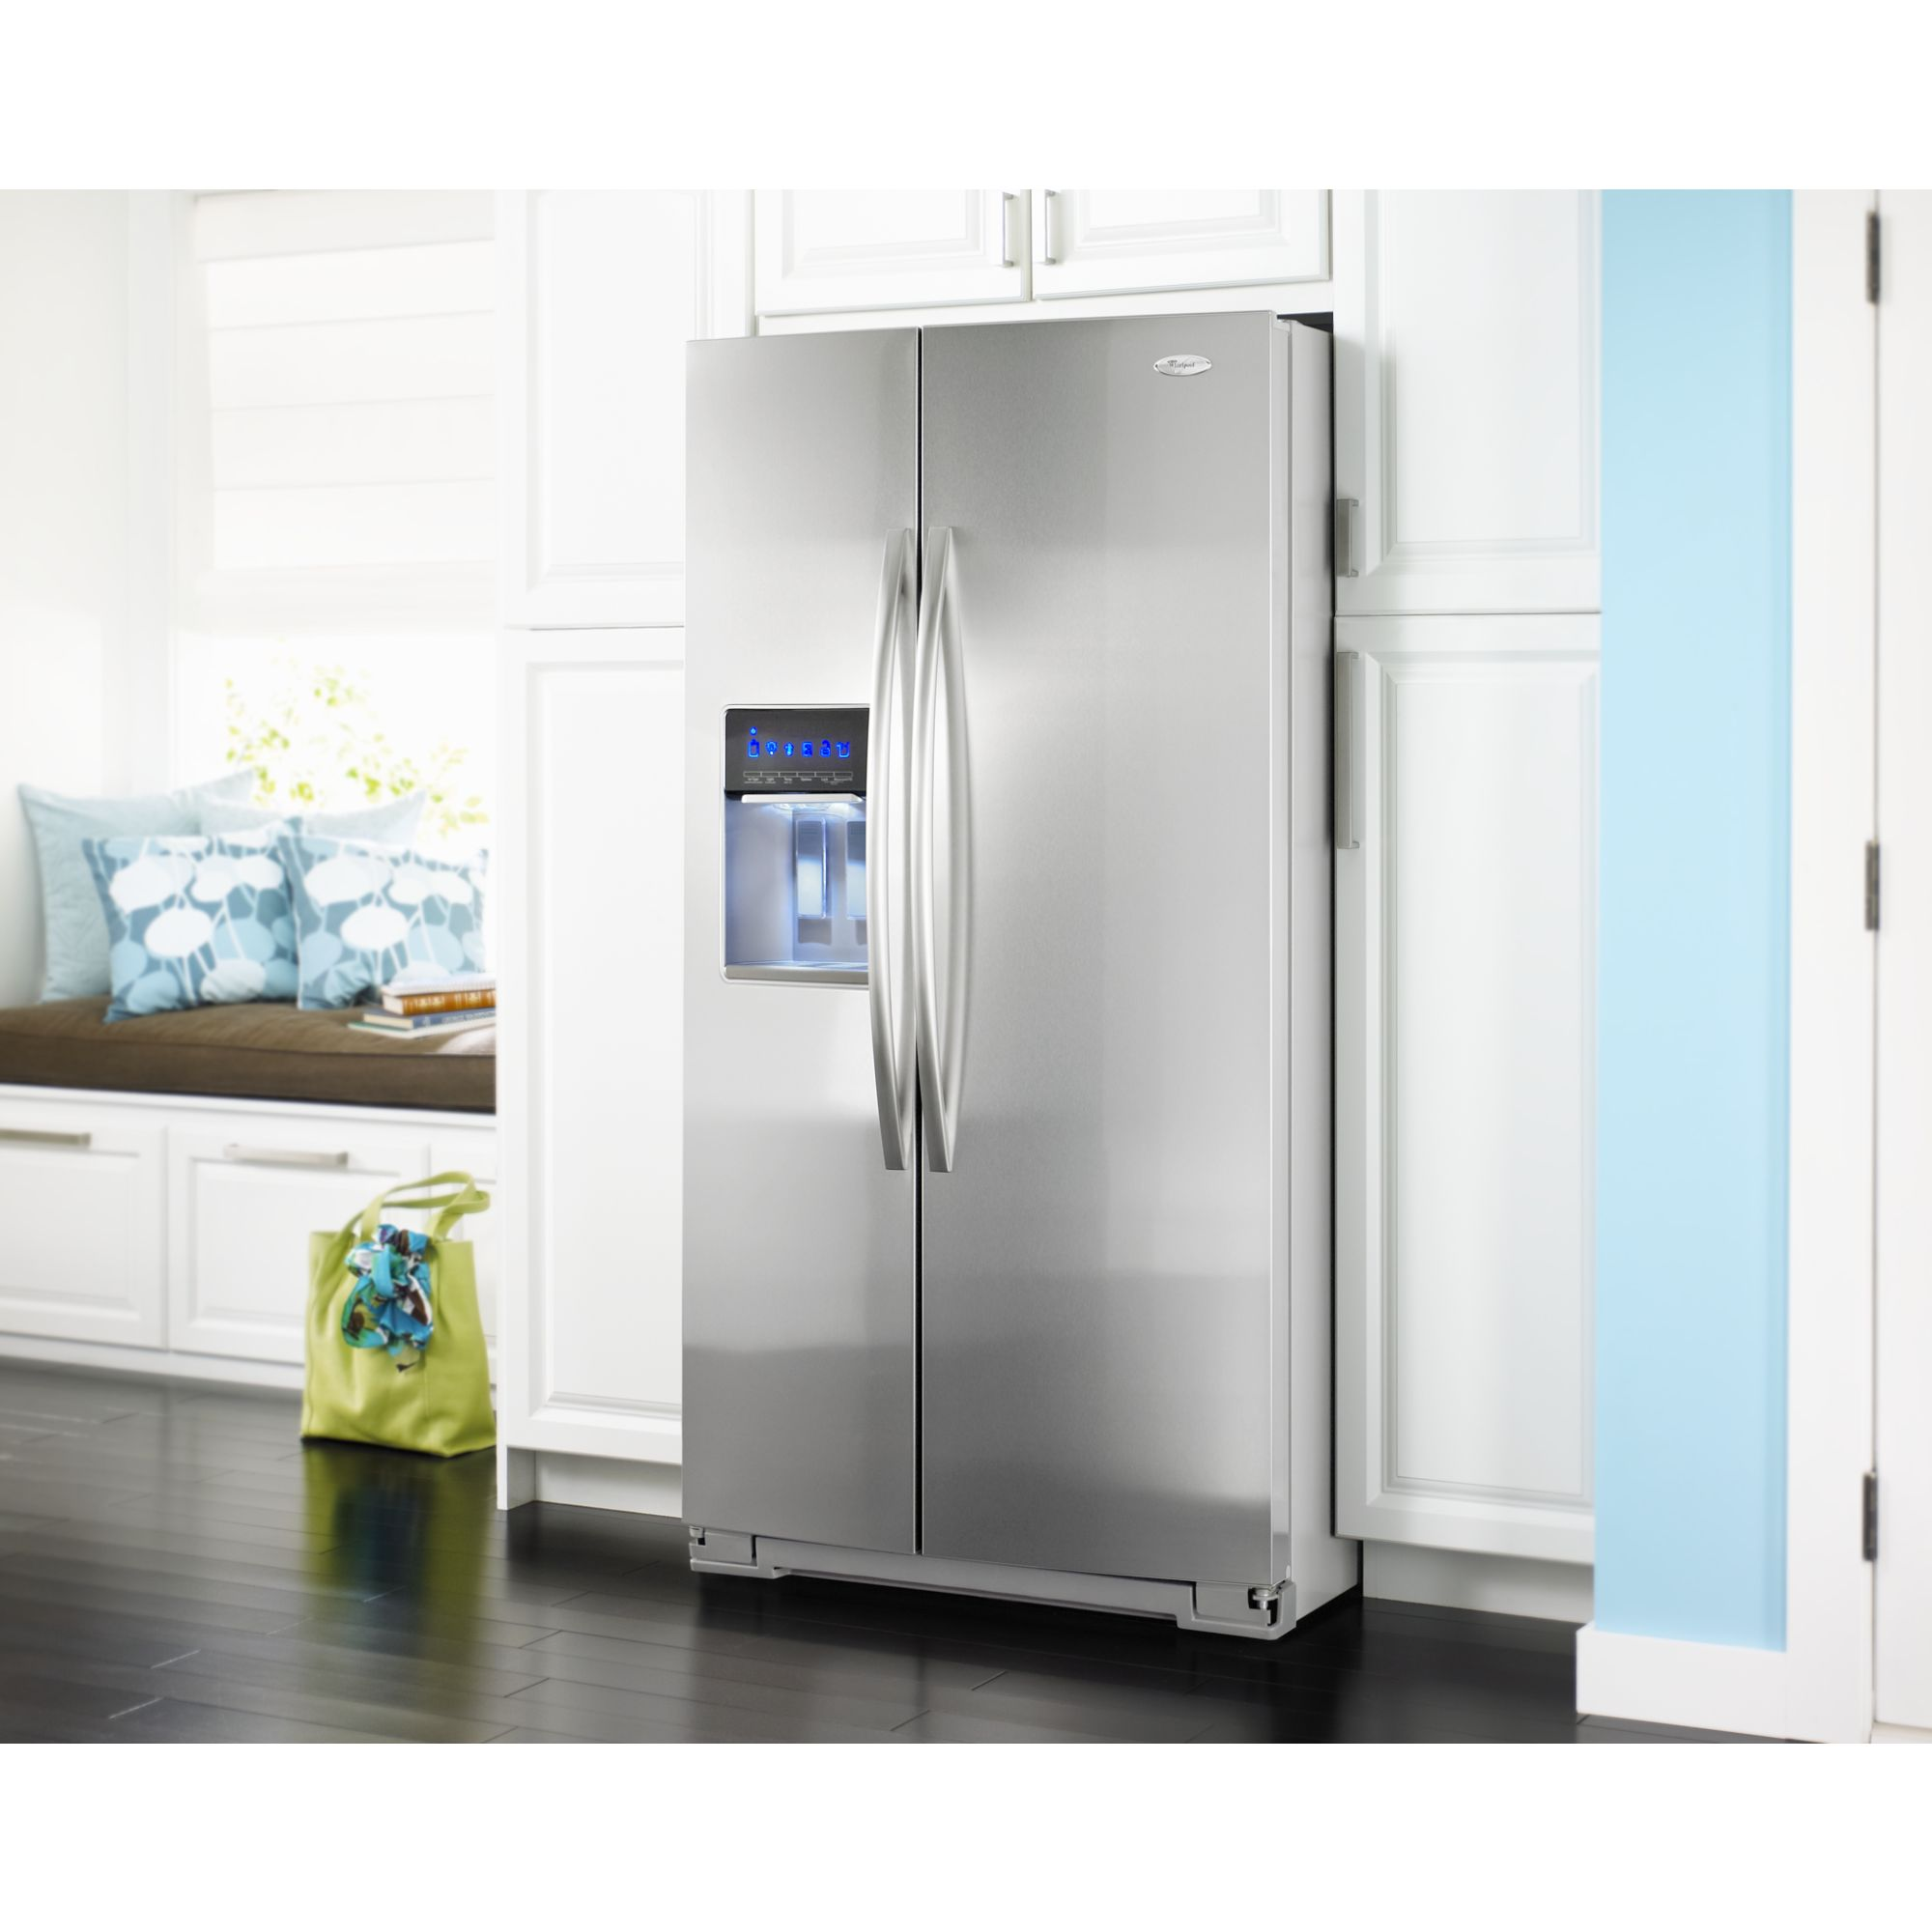 Whirlpool 30 cu. ft. Side-by-Side Refrigerator - Stainless Steel